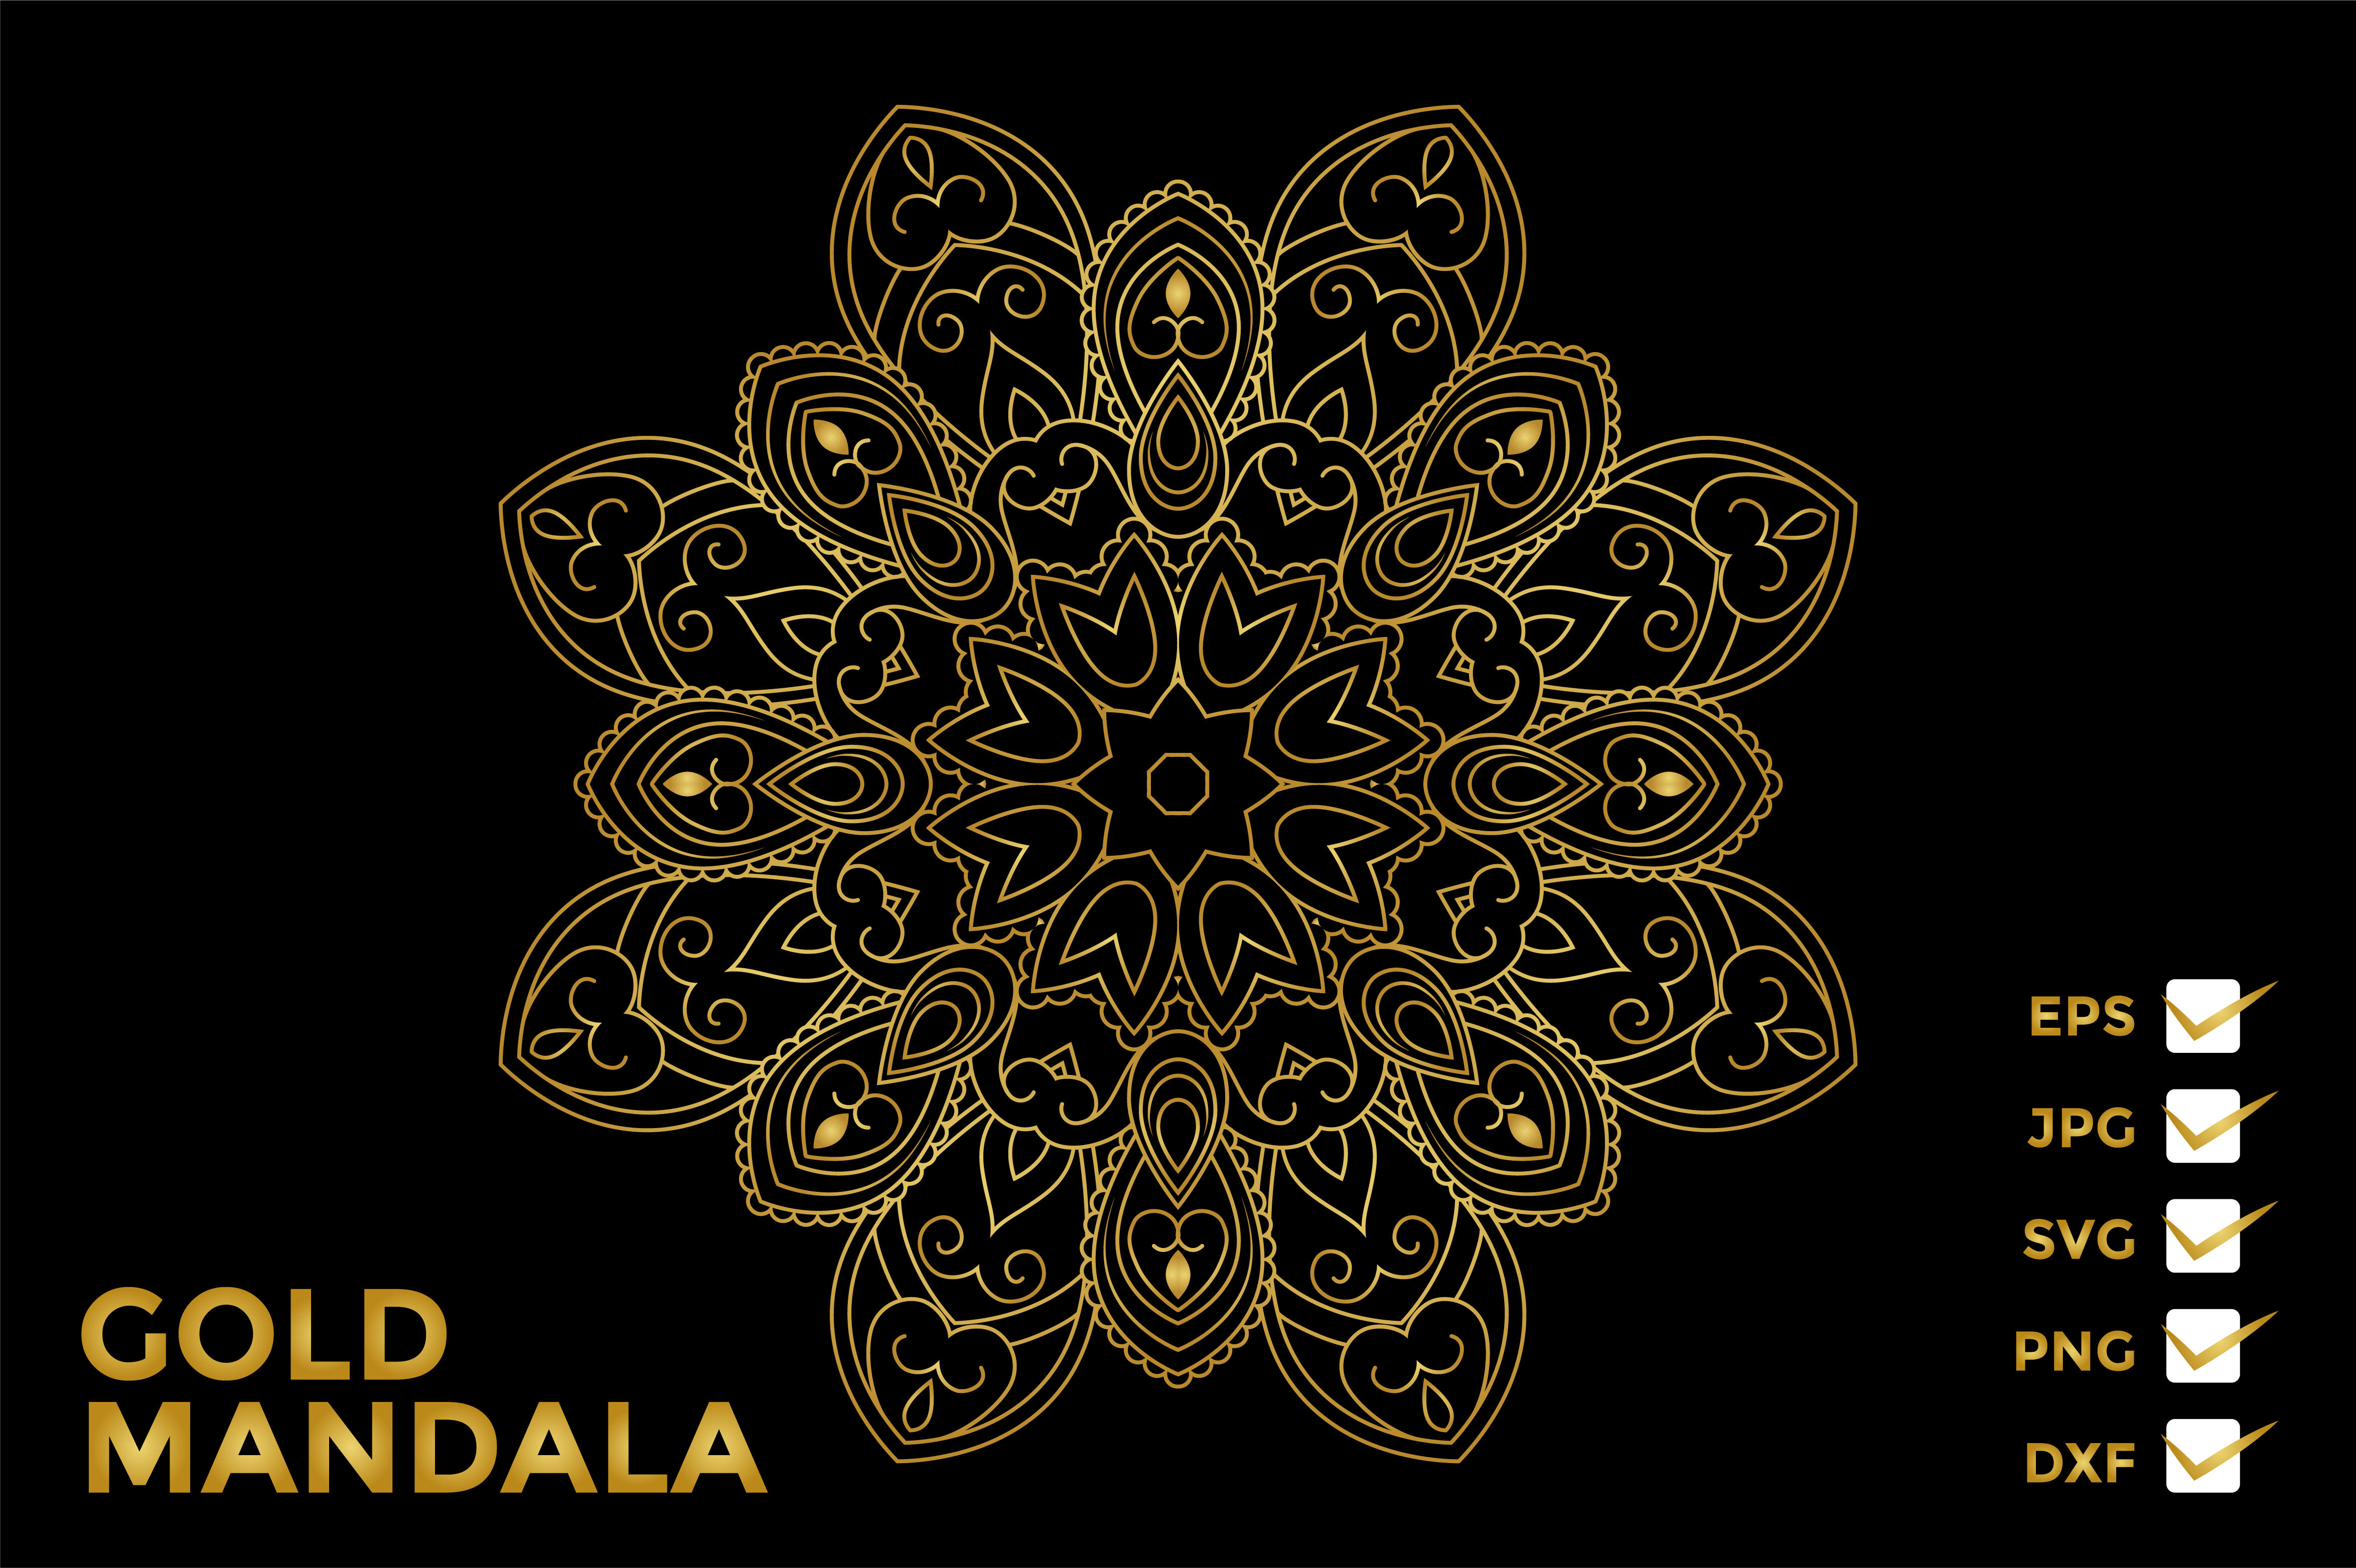 Download Free Mandala Gold Vector Ornament Graphic By Studiopayon Creative for Cricut Explore, Silhouette and other cutting machines.